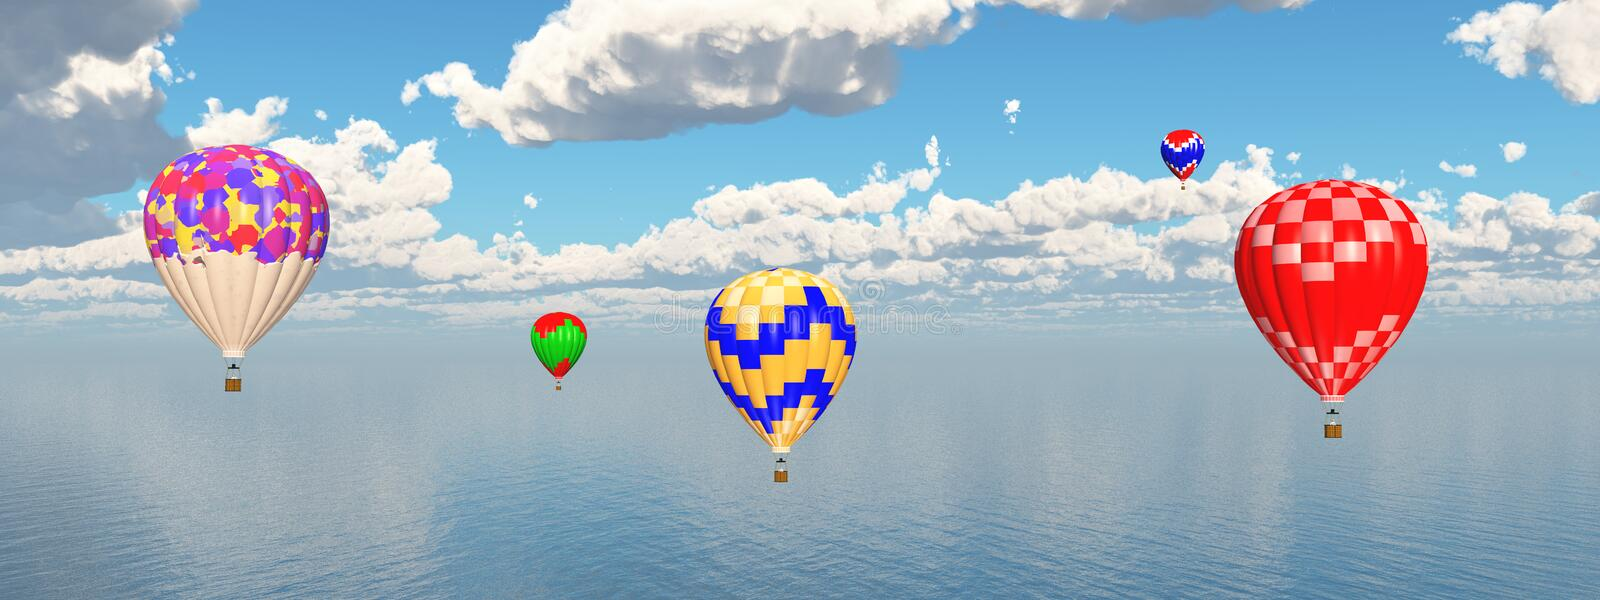 Hot air balloons over ocean. Computer generated 3D illustration with hot air balloons over ocean royalty free illustration